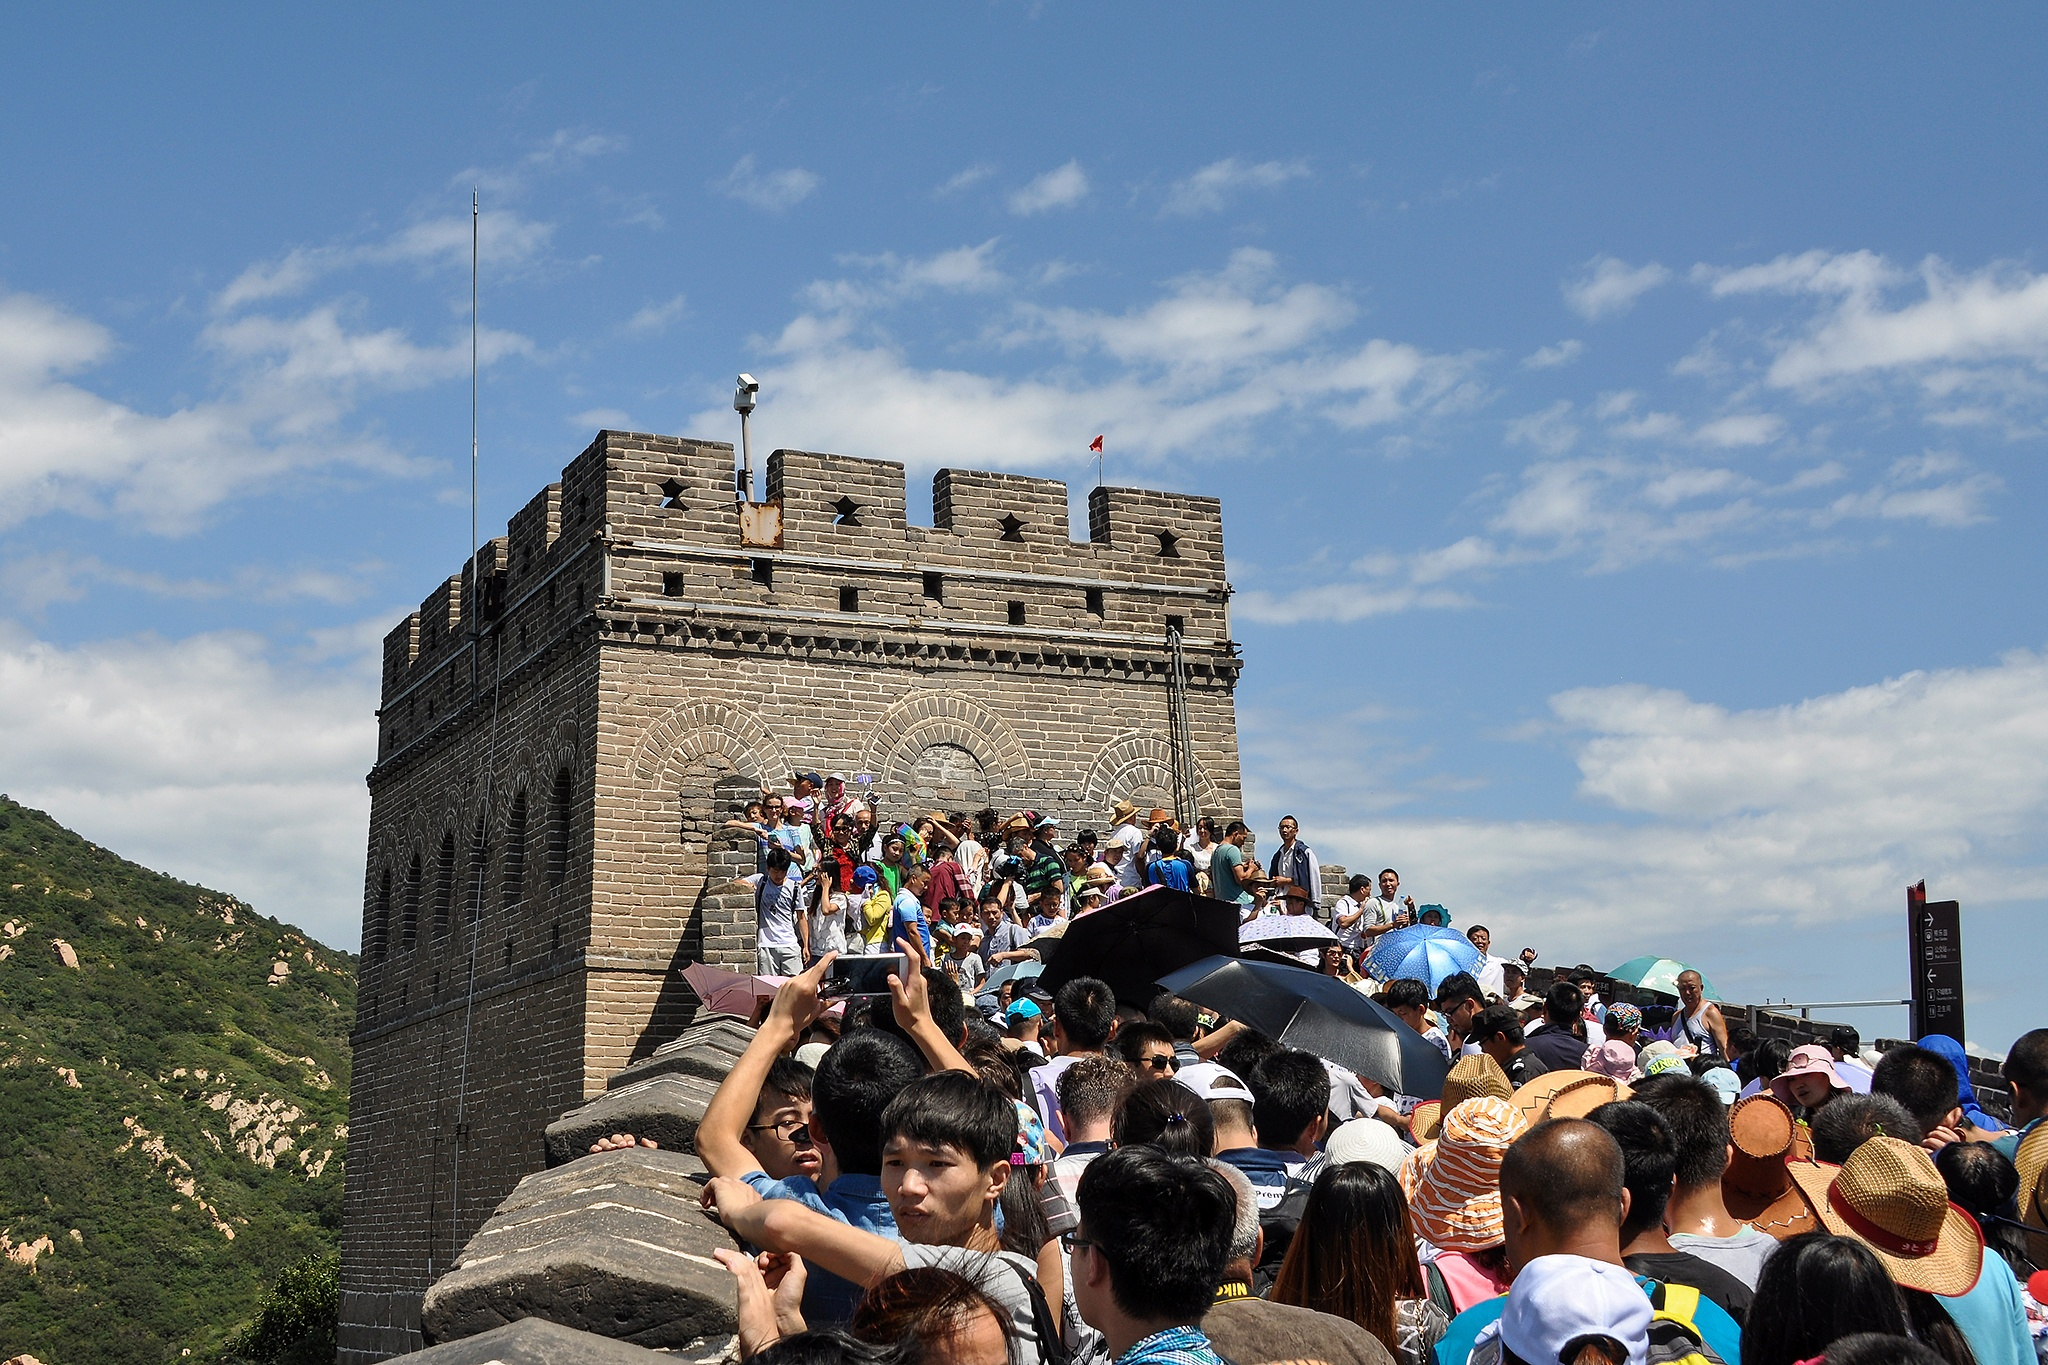 Never alone on the Great Wall of China by Kjell Lundqvist